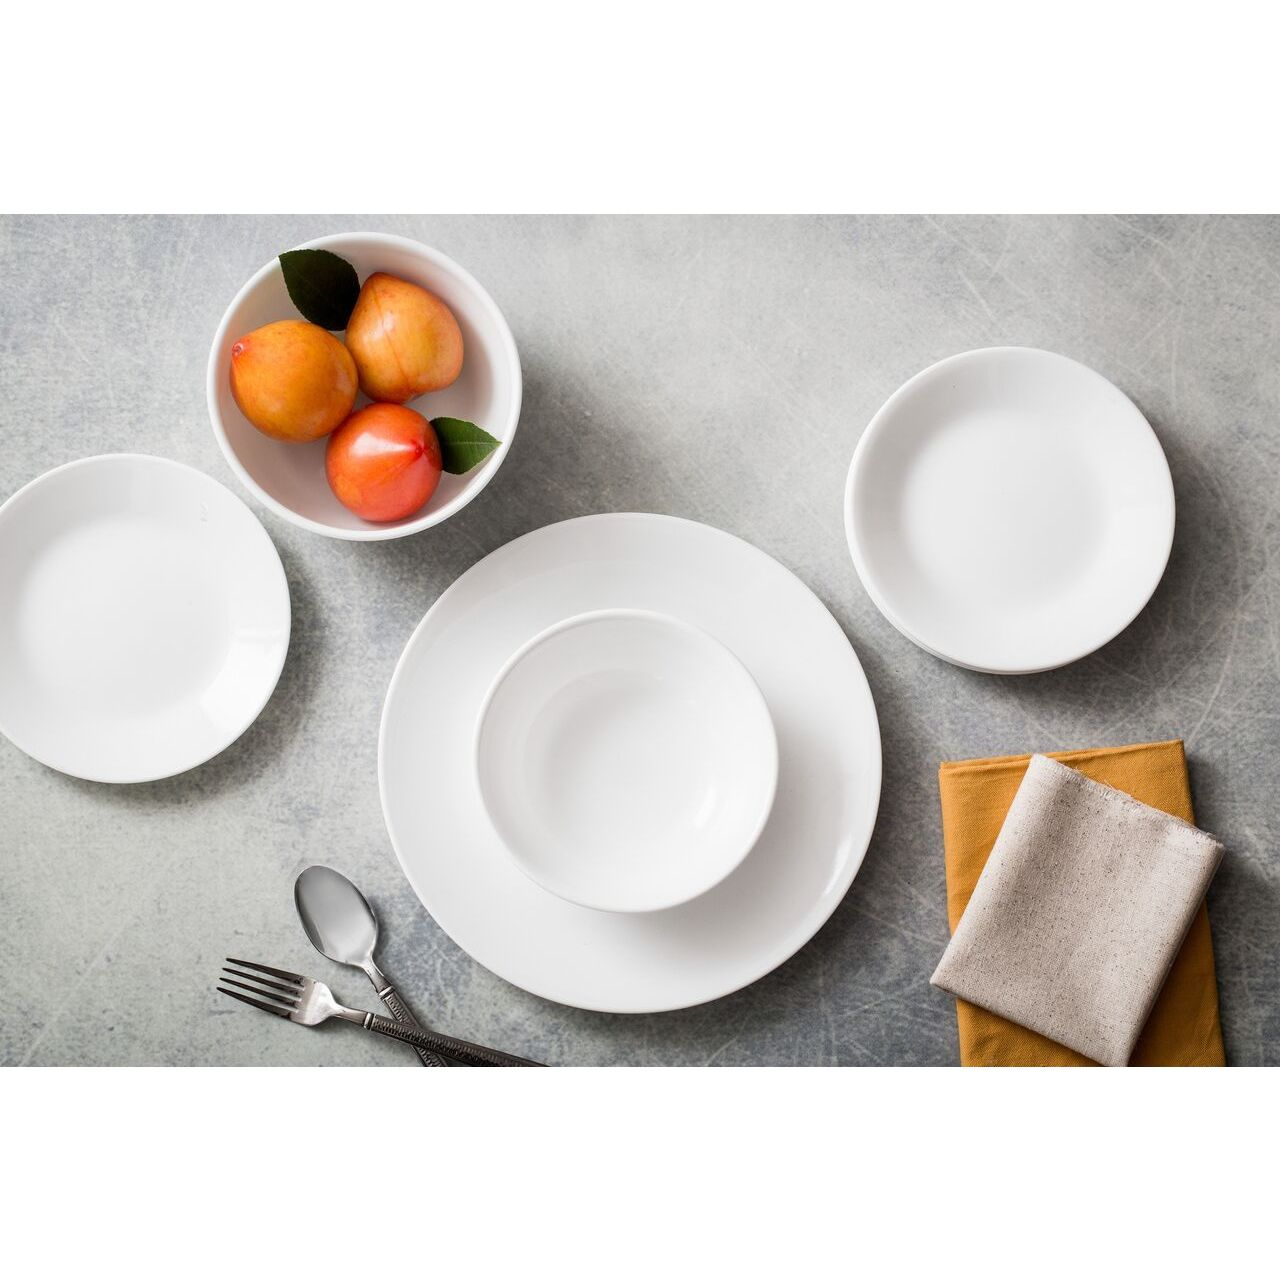 Corelle Livingware 38 piece Set Service for 12 Winter Frost White - Free Shipping Today - Overstock - 17436030  sc 1 st  Overstock.com & Corelle Livingware 38 piece Set Service for 12 Winter Frost White ...